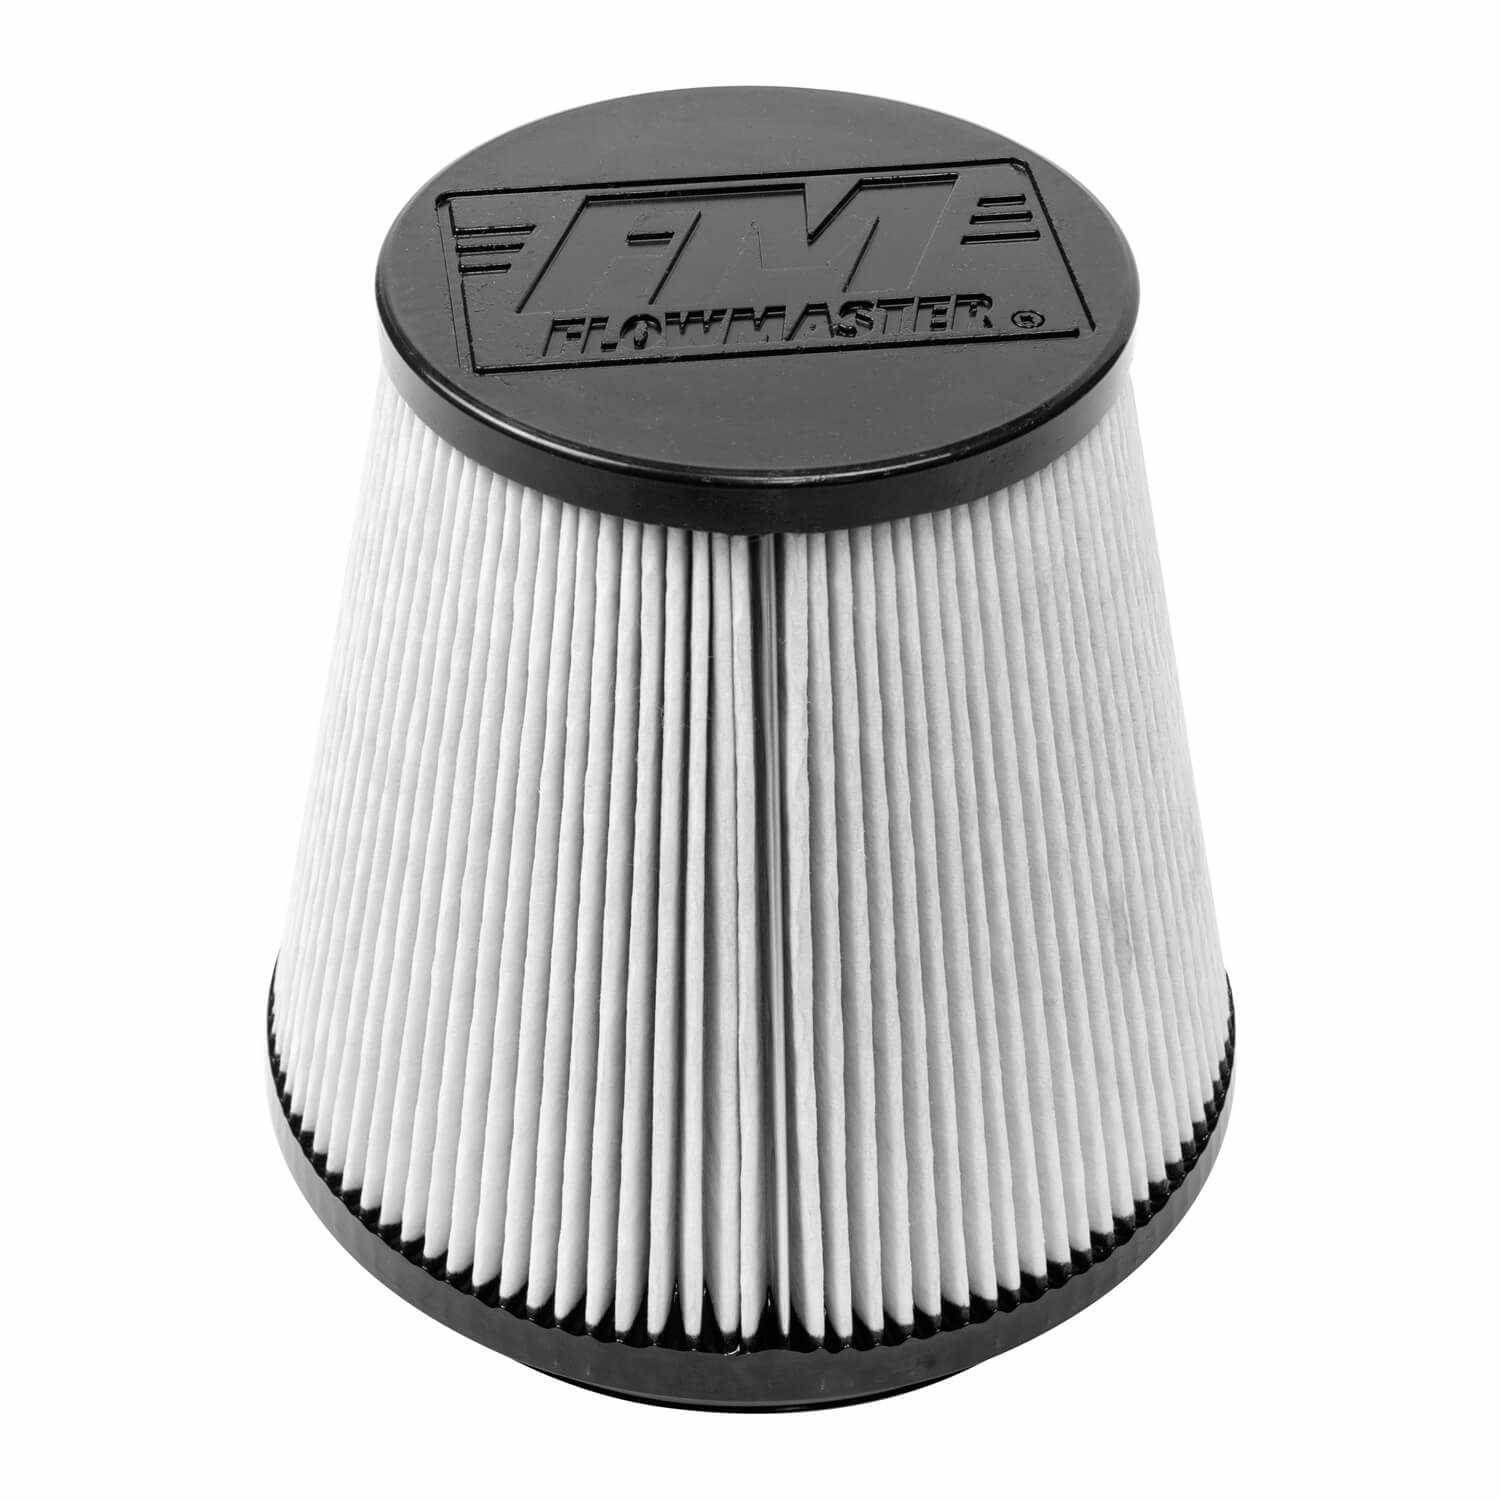 615011D Flowmaster Delta Force®Cold Air Intake Filter